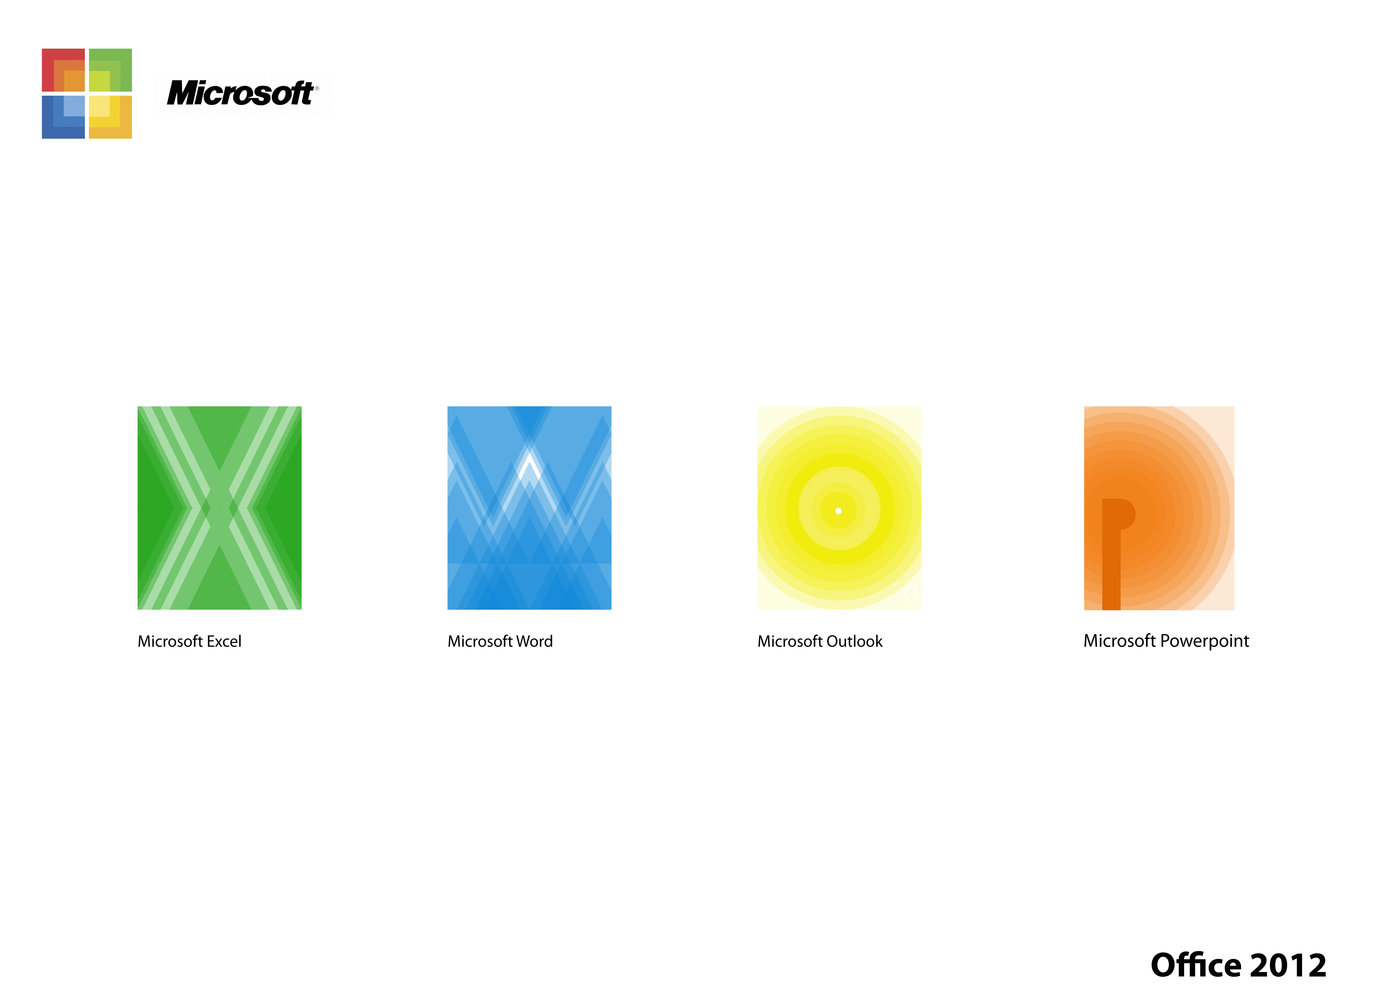 Microsoft Office 2012 icons by Steven Paxton at Coroflot com